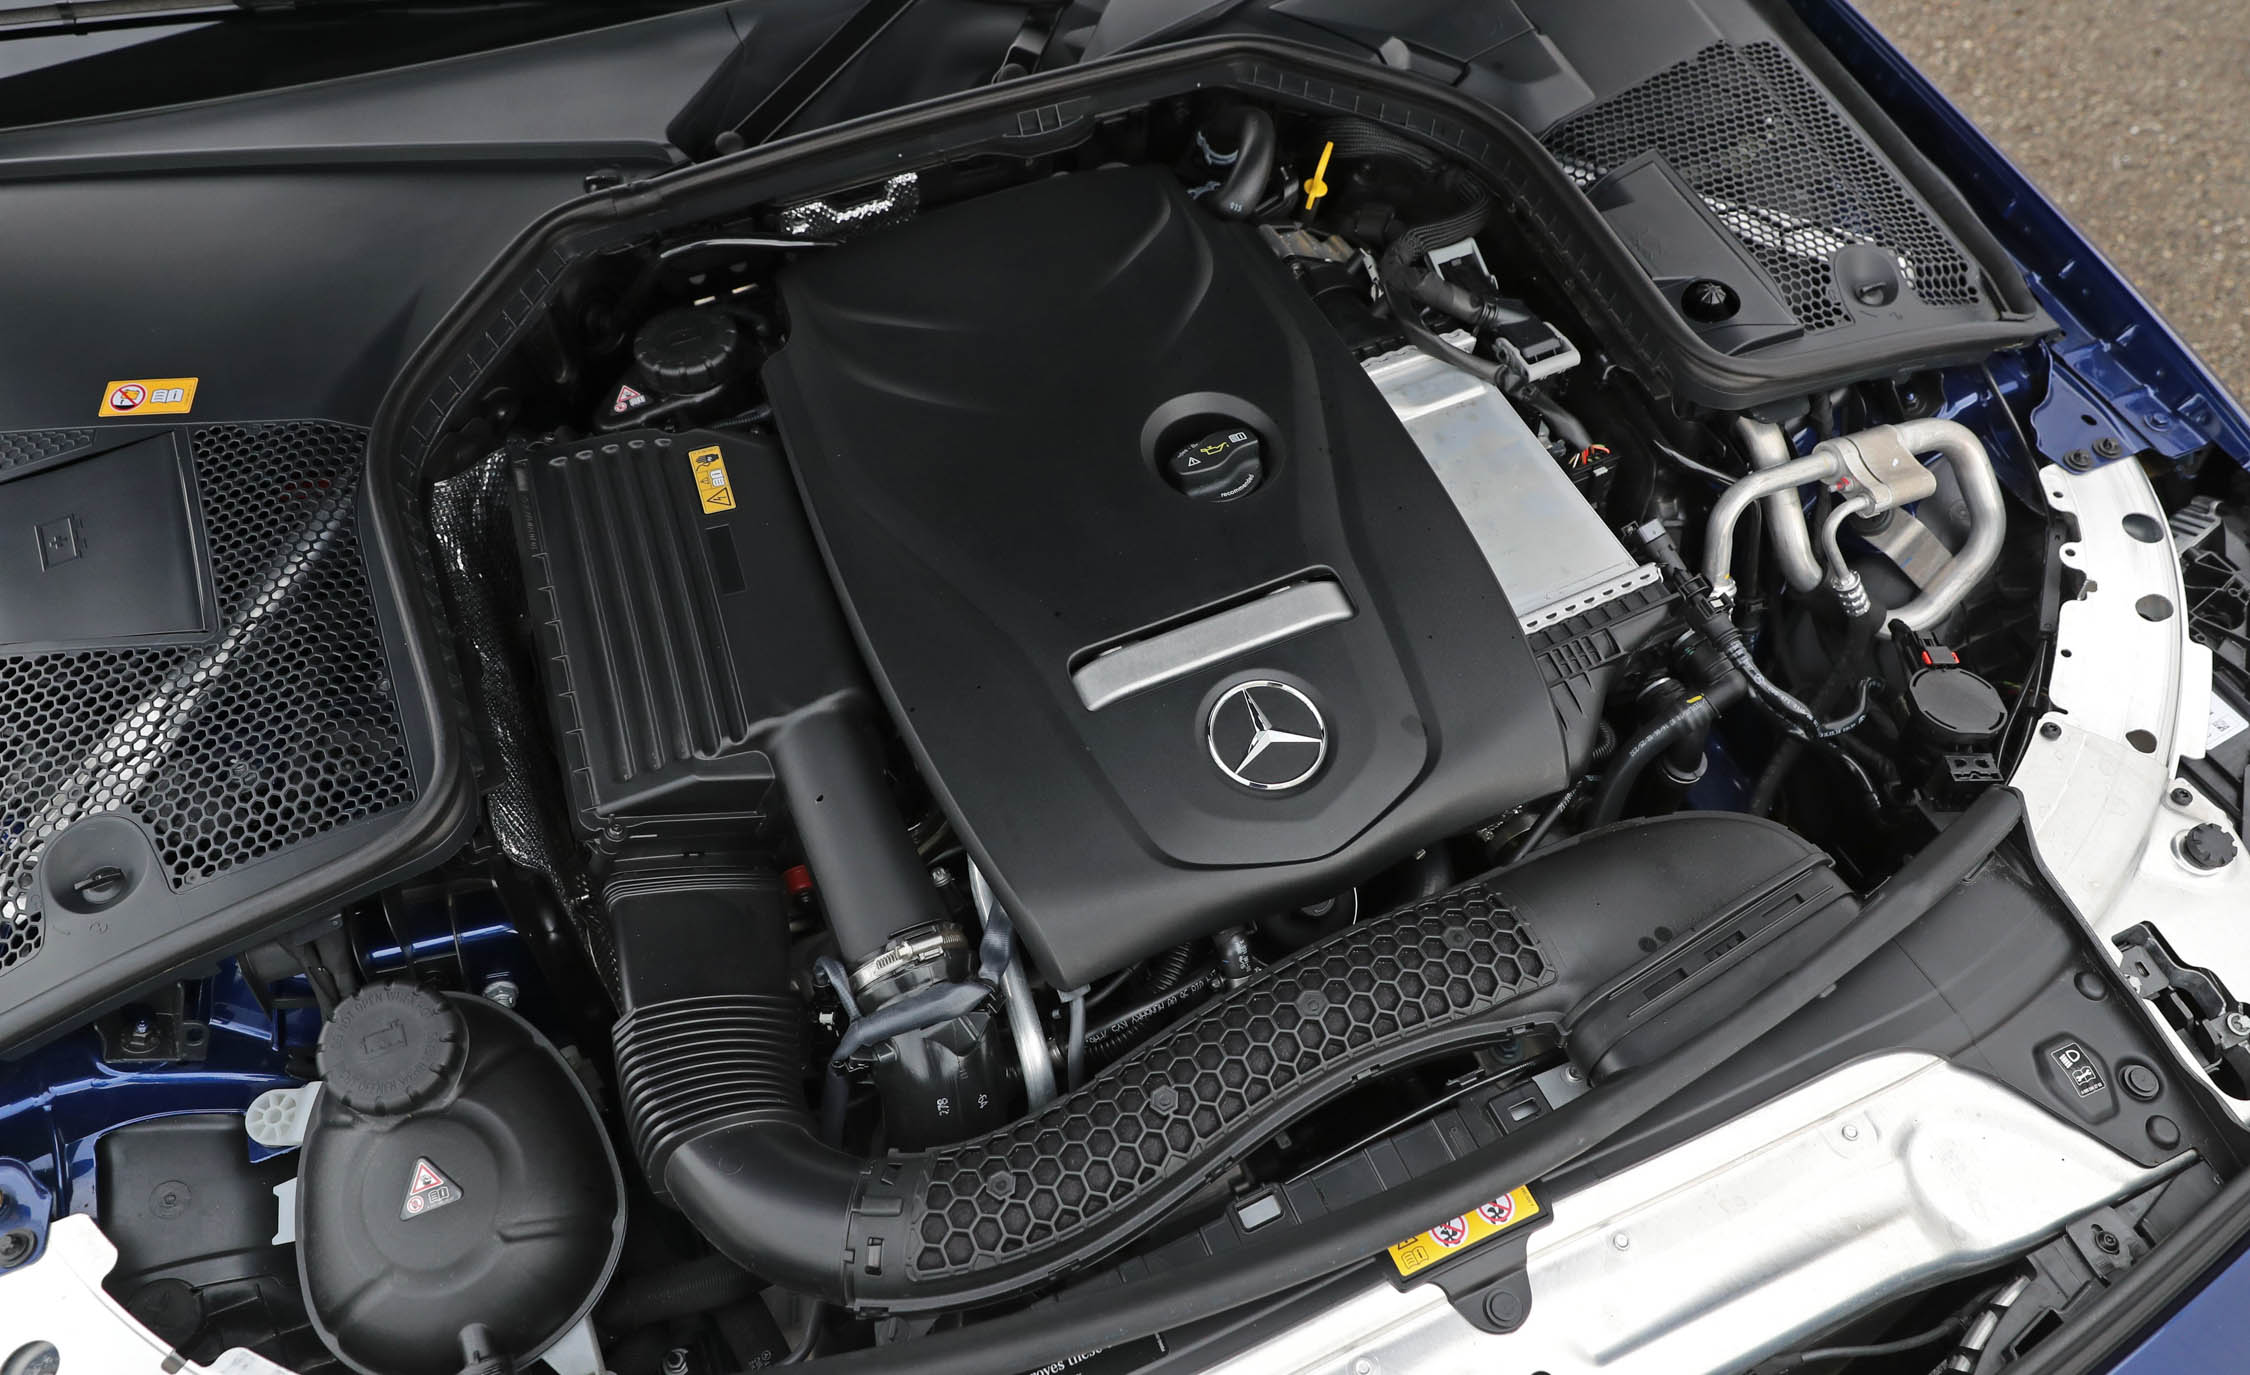 2017 Mercedes Benz C300 4MATIC Coupe View Engine (Photo 44 of 44)